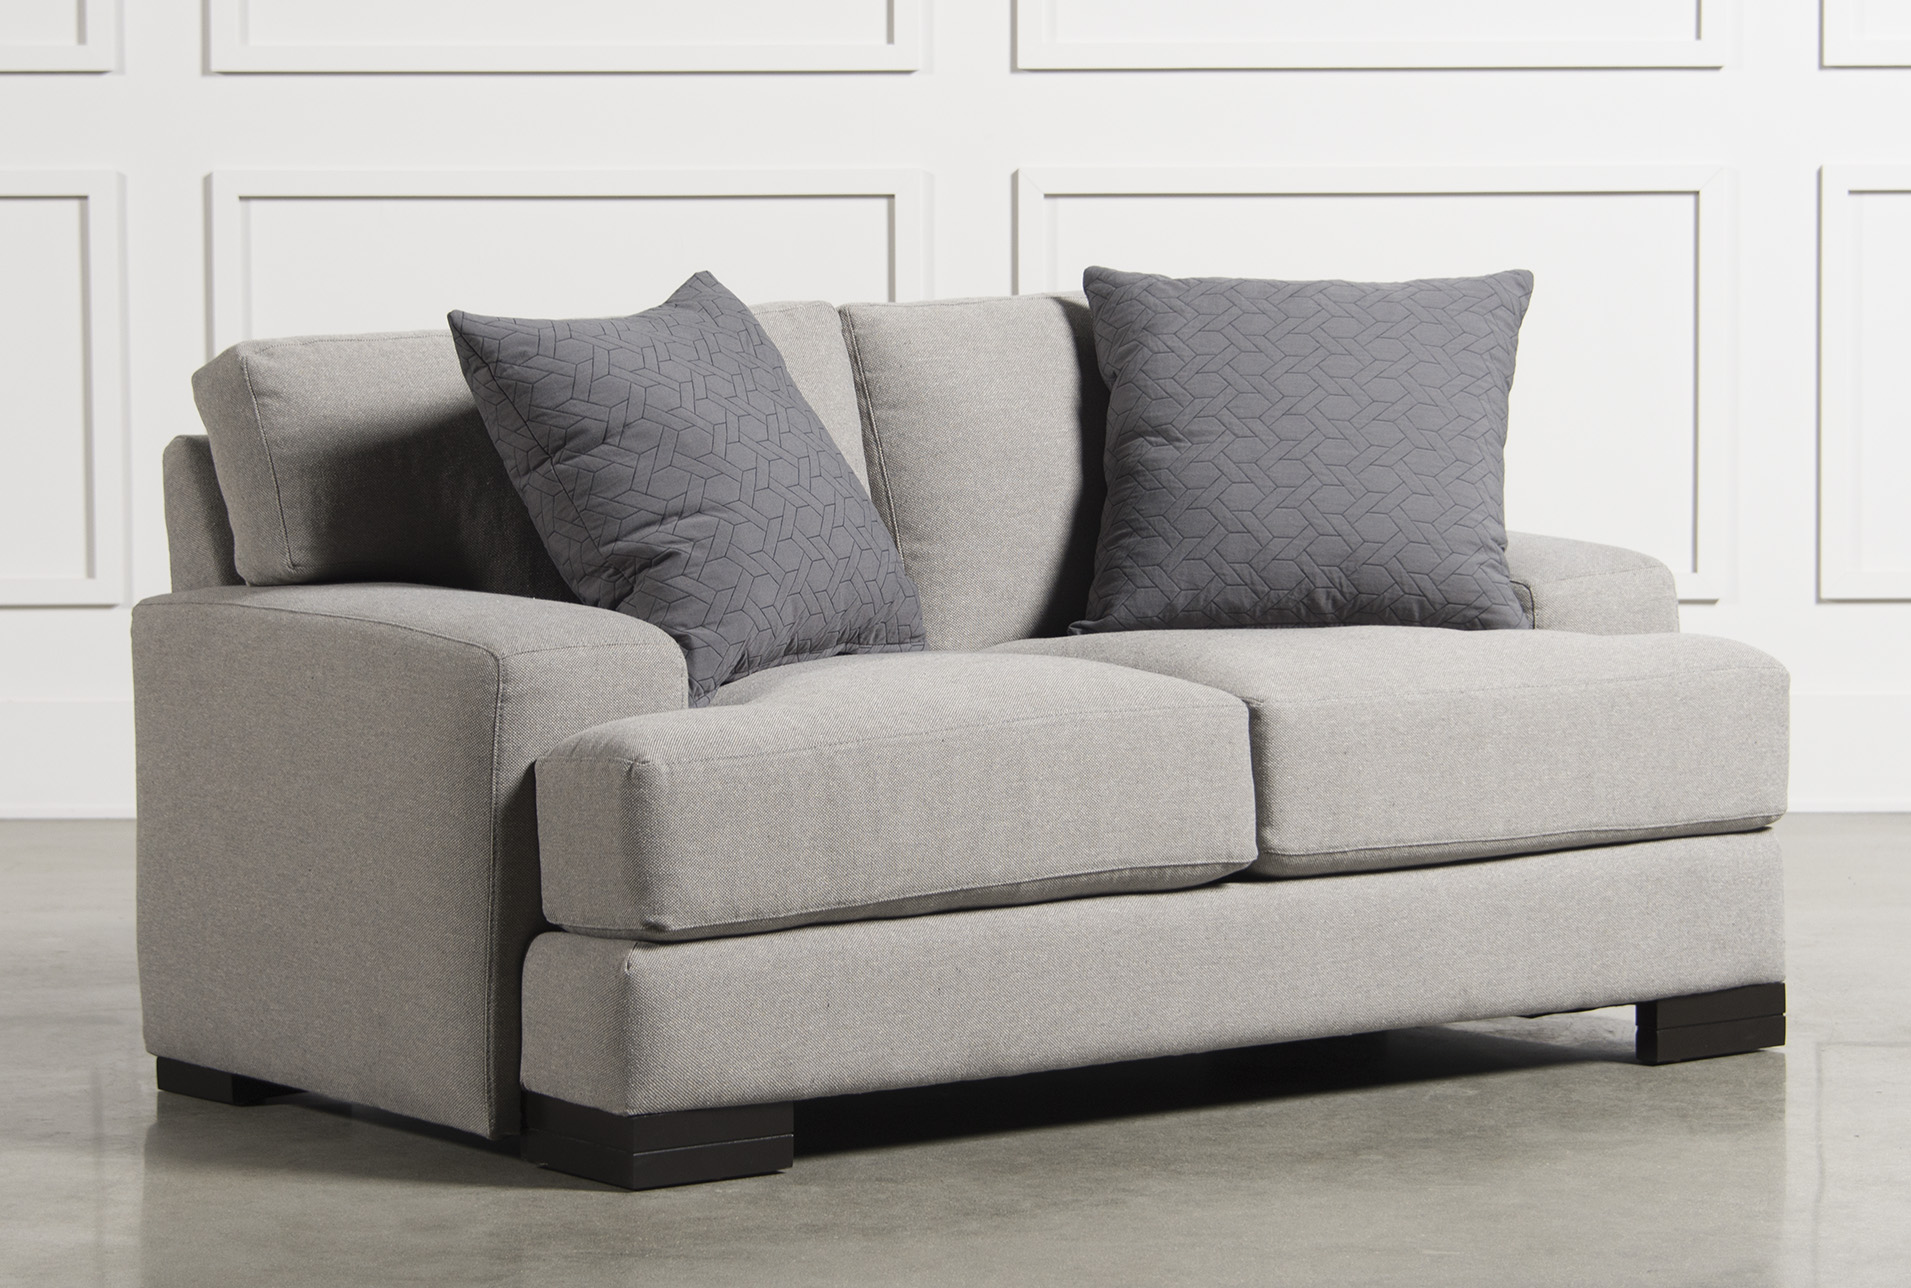 Aidan Loveseat (Qty: 1) Has Been Successfully Added To Your Cart.